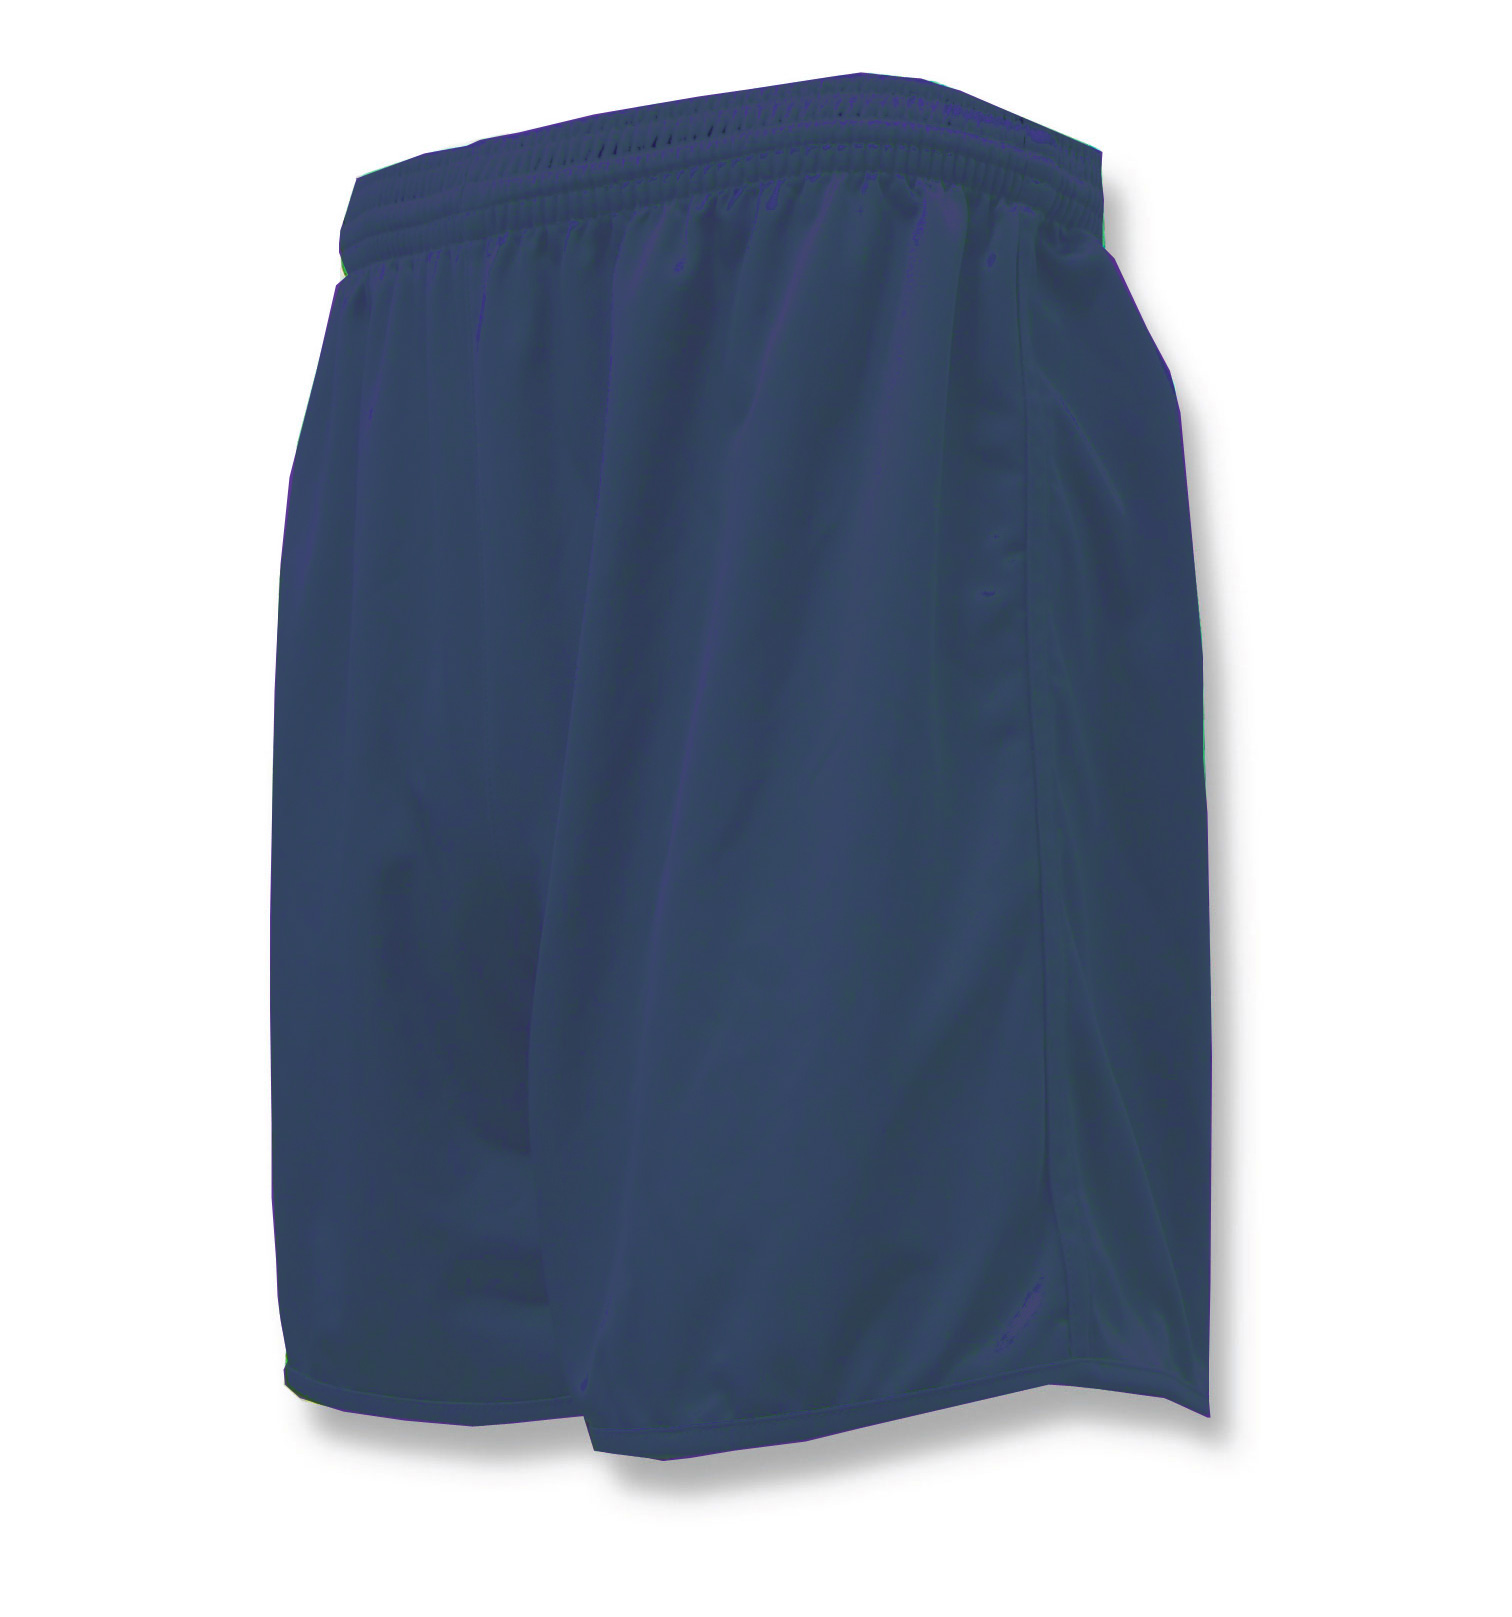 Bravo soccer shorts in navy by Code Four Athletics